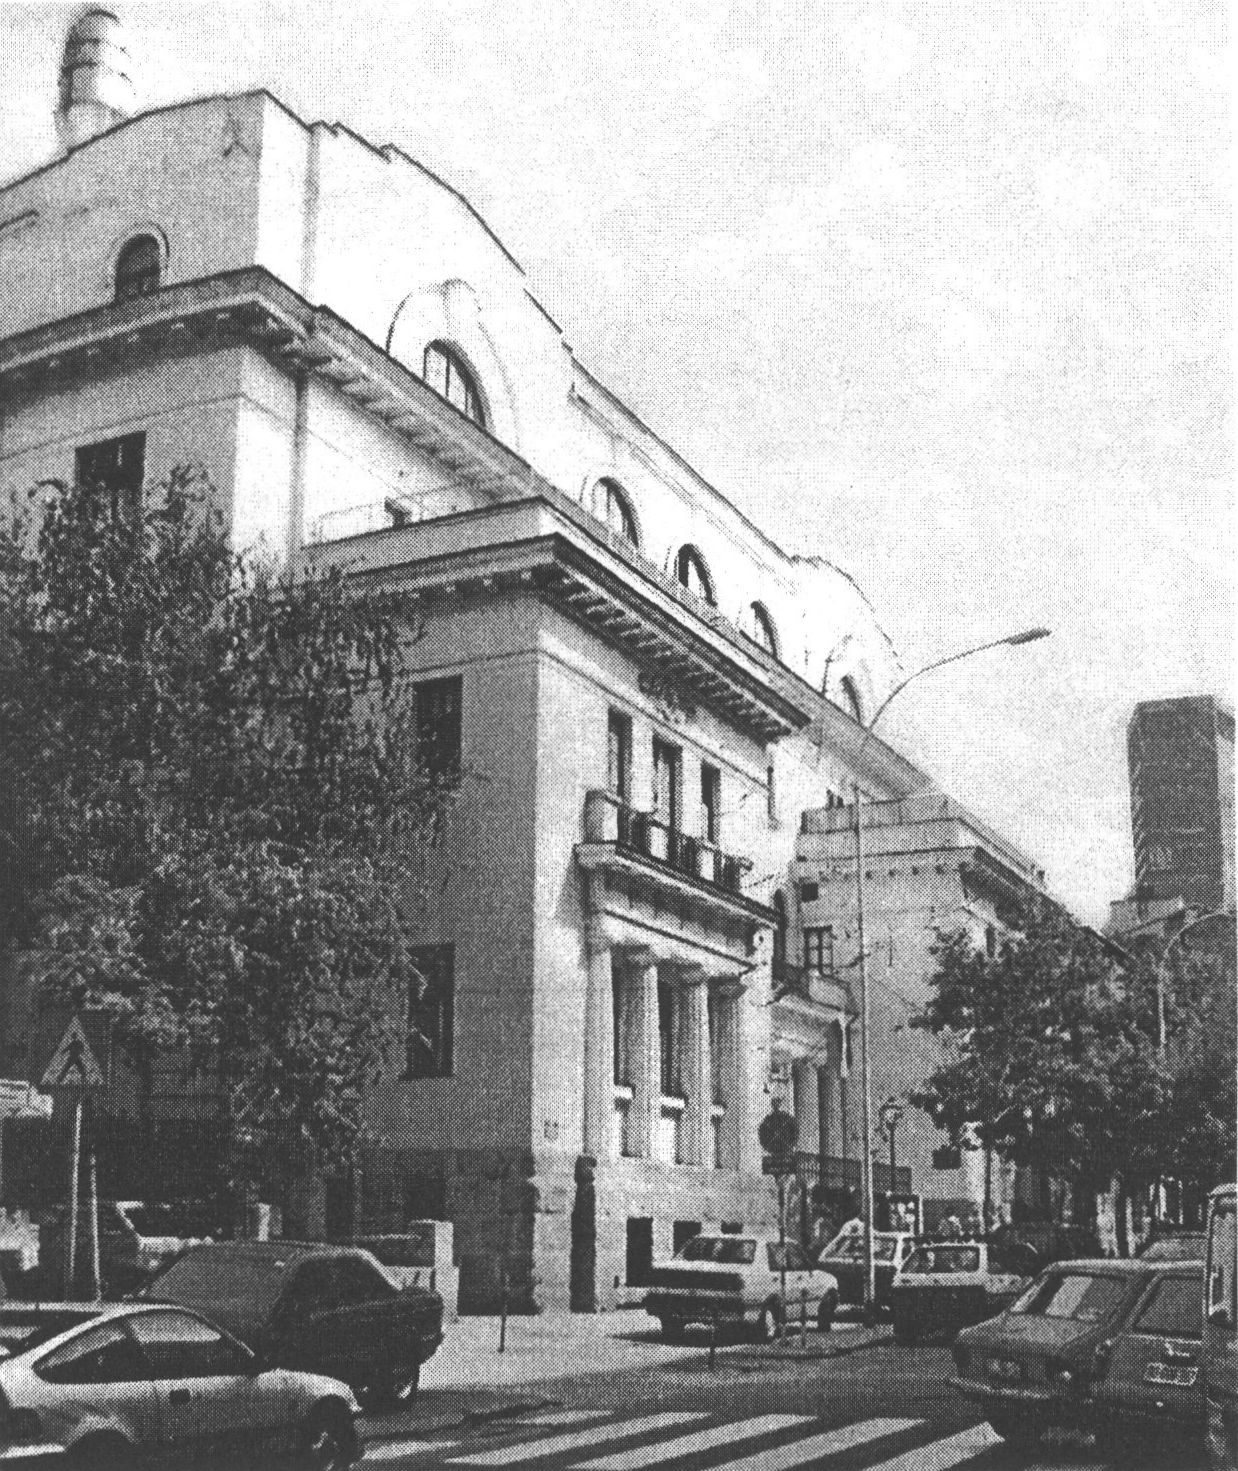 Белград. Русский дом. Архитектор В.Ф. Баумгартен. Belgrade. Russian House. Architect V.F. Baumgarten